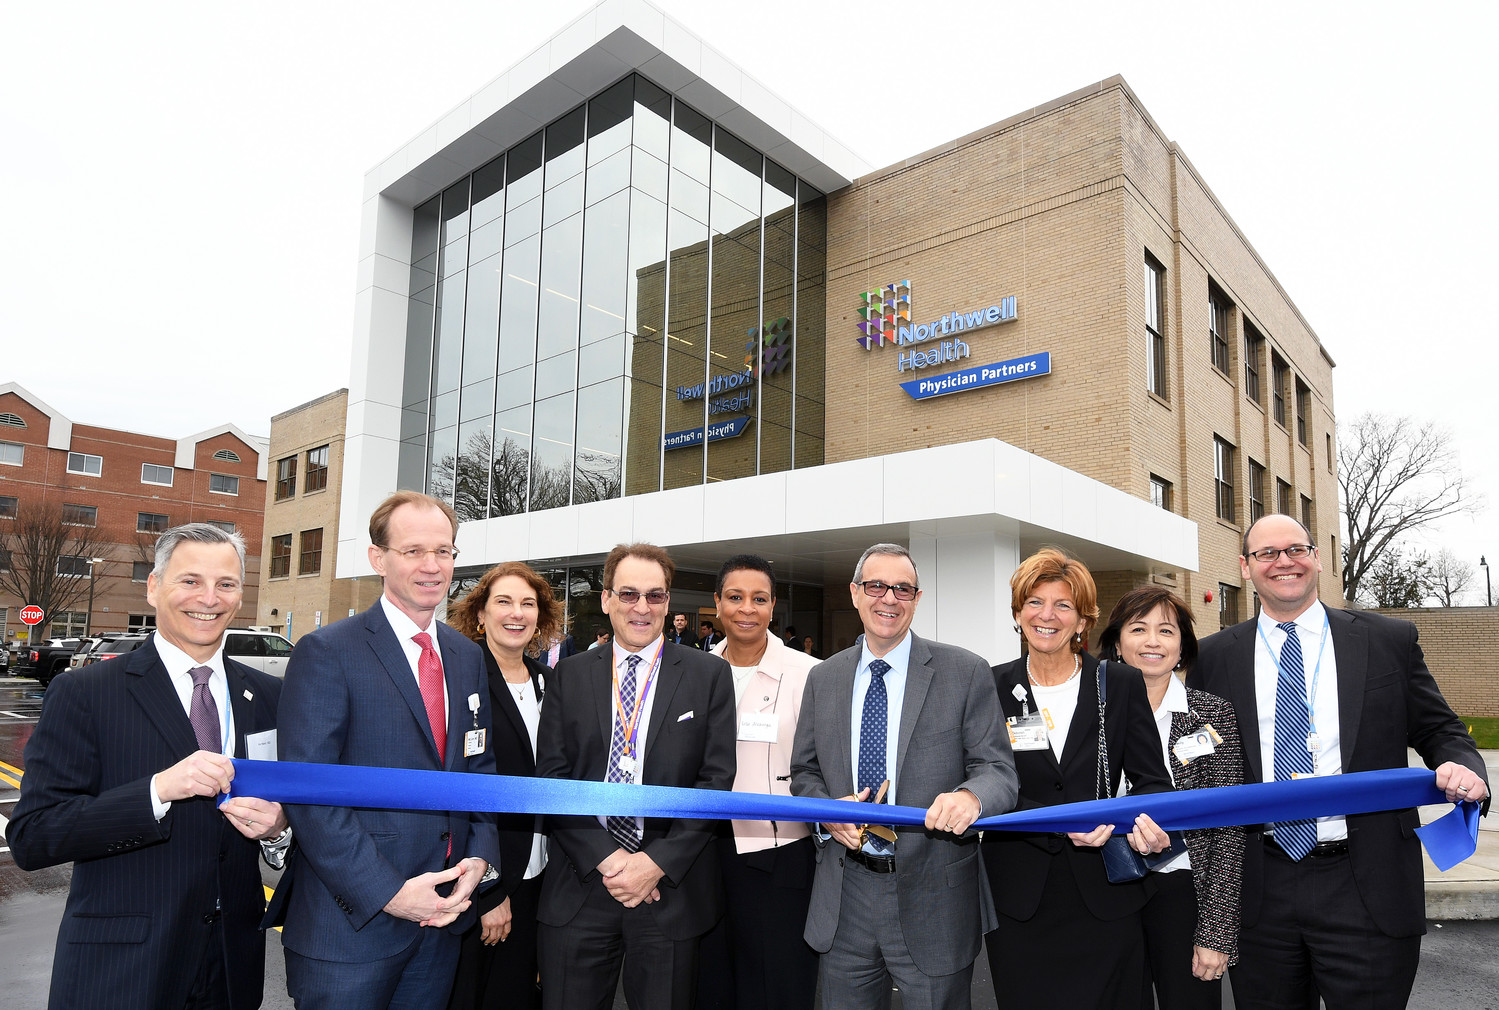 Northwell Health Chief Operating Officer Mark Solazzo, with scissors, led a ribbon-cutting ceremony on April 27 at Northwell Health Physician Partners' new Lynbrook location. The facility is expected to open in late May or early June after undergoing a two-year, $19 million renovation.